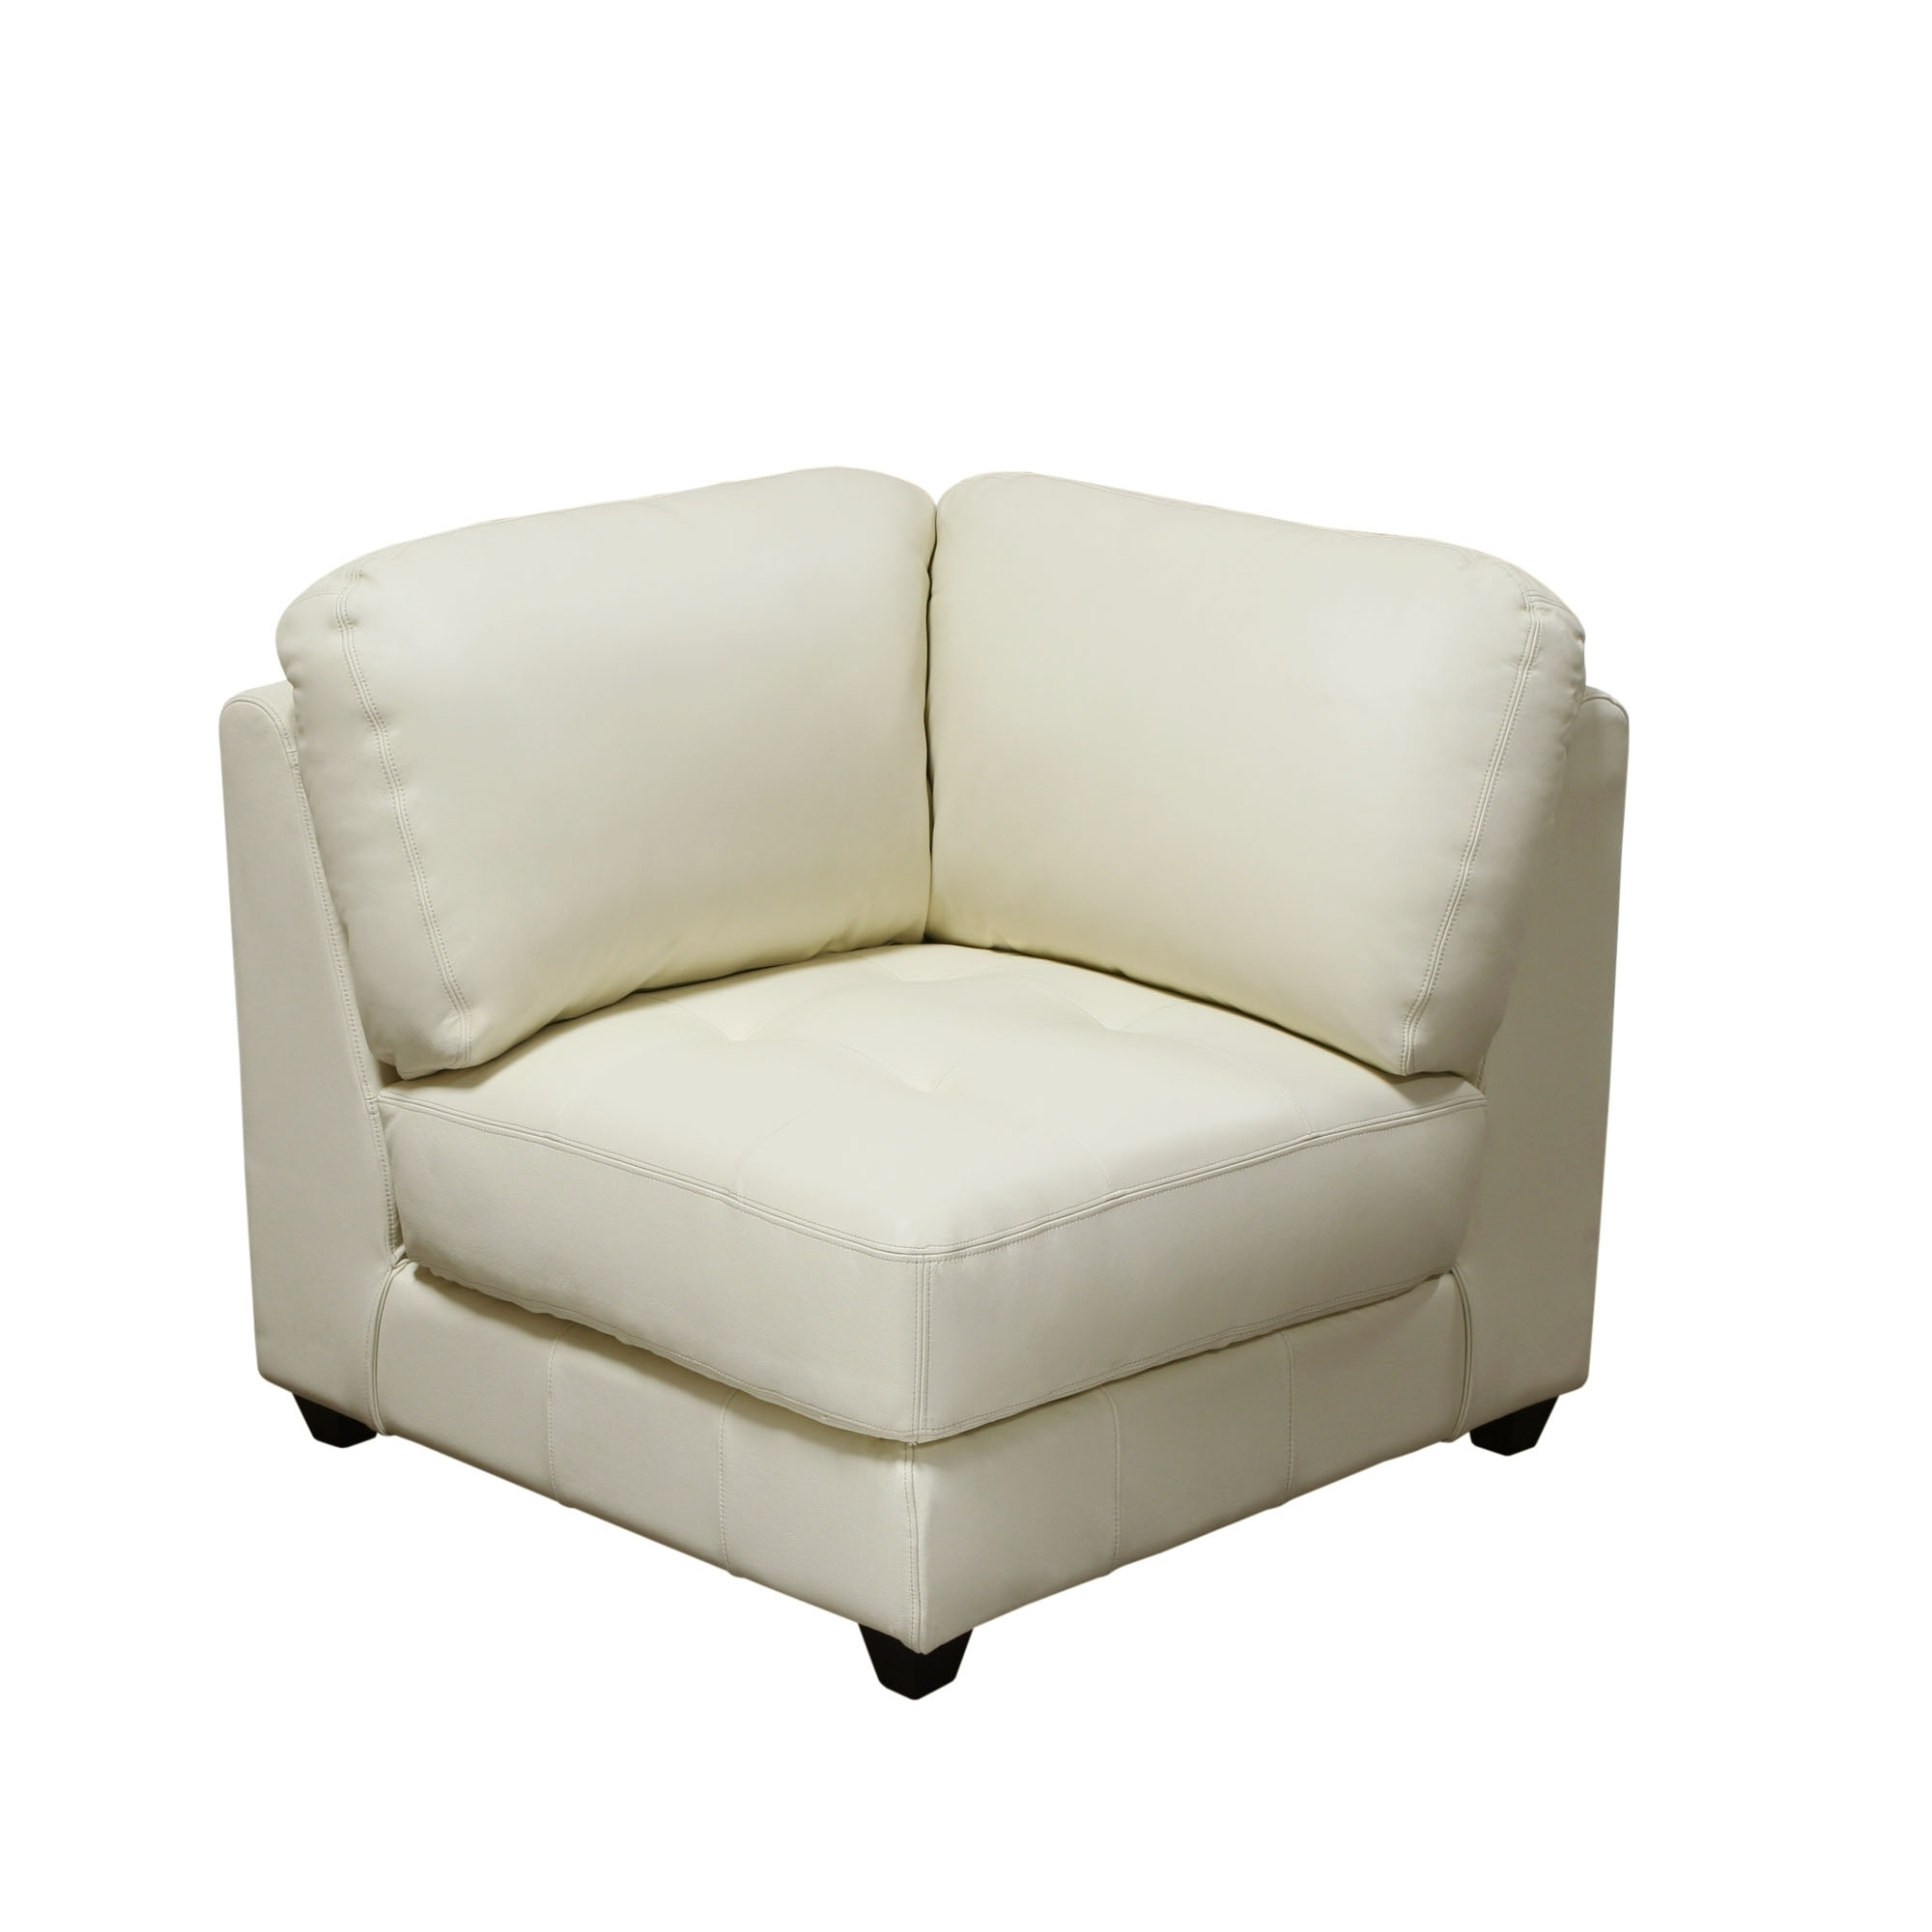 Most Up To Date Sofa Zen Collection Square Corner Chair Zensqcornerchair With Corner Sofa Chairs (View 7 of 15)